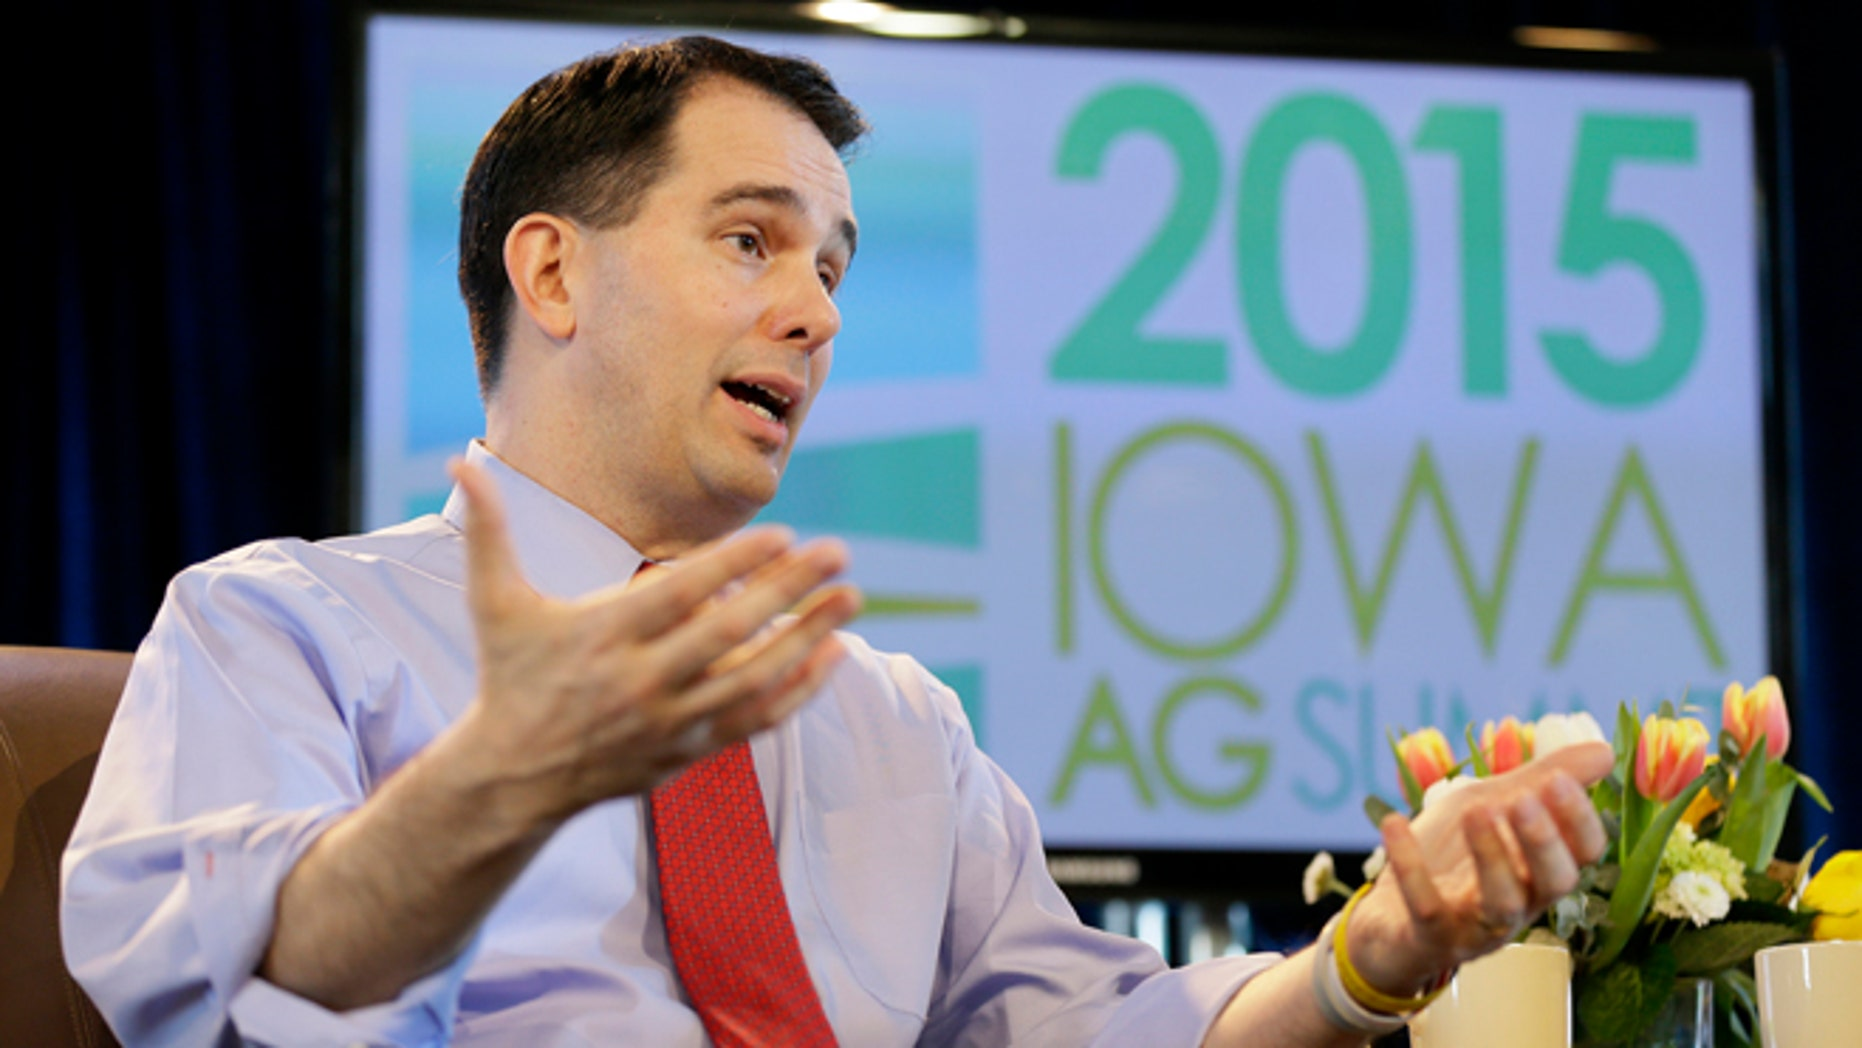 FILE - In this March 7, 2015 file photo, Wisconsin Gov. Scott Walker speaks during the Iowa Agriculture Summit in Des Moines, Iowa.  Known for his accessibility and willingness to always be available to take questions, even after the most routine appearances, Walker has suddenly become much harder to reach as he ramps up for a likely 2016 presidential campaign and deals with a series of flubs and shifts in position on hot button issues. (AP Photo/Charlie Neibergall)